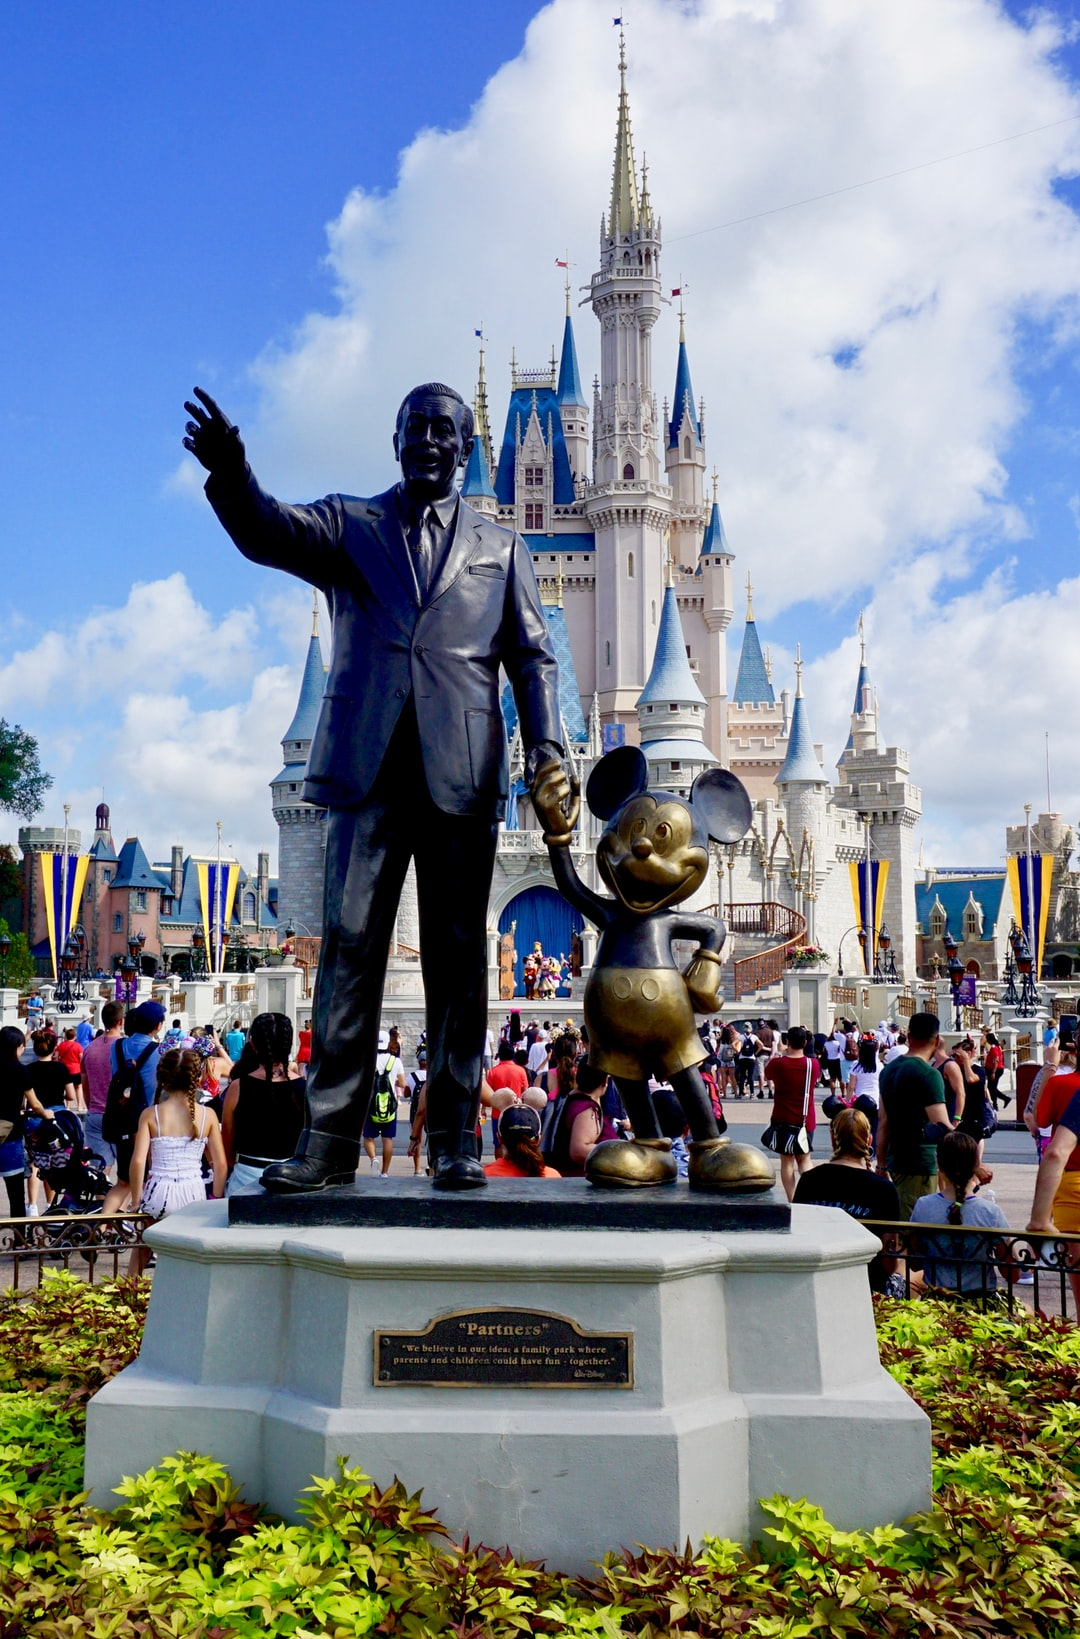 """""""I only hope we never lose sight of one thing ... that it was all started by a mouse"""" - Walt Disney. Statue of Mickey Mouse and Walt Disney at Orlando Magic Kingdom theme park. Behind, the famous Disney castle."""